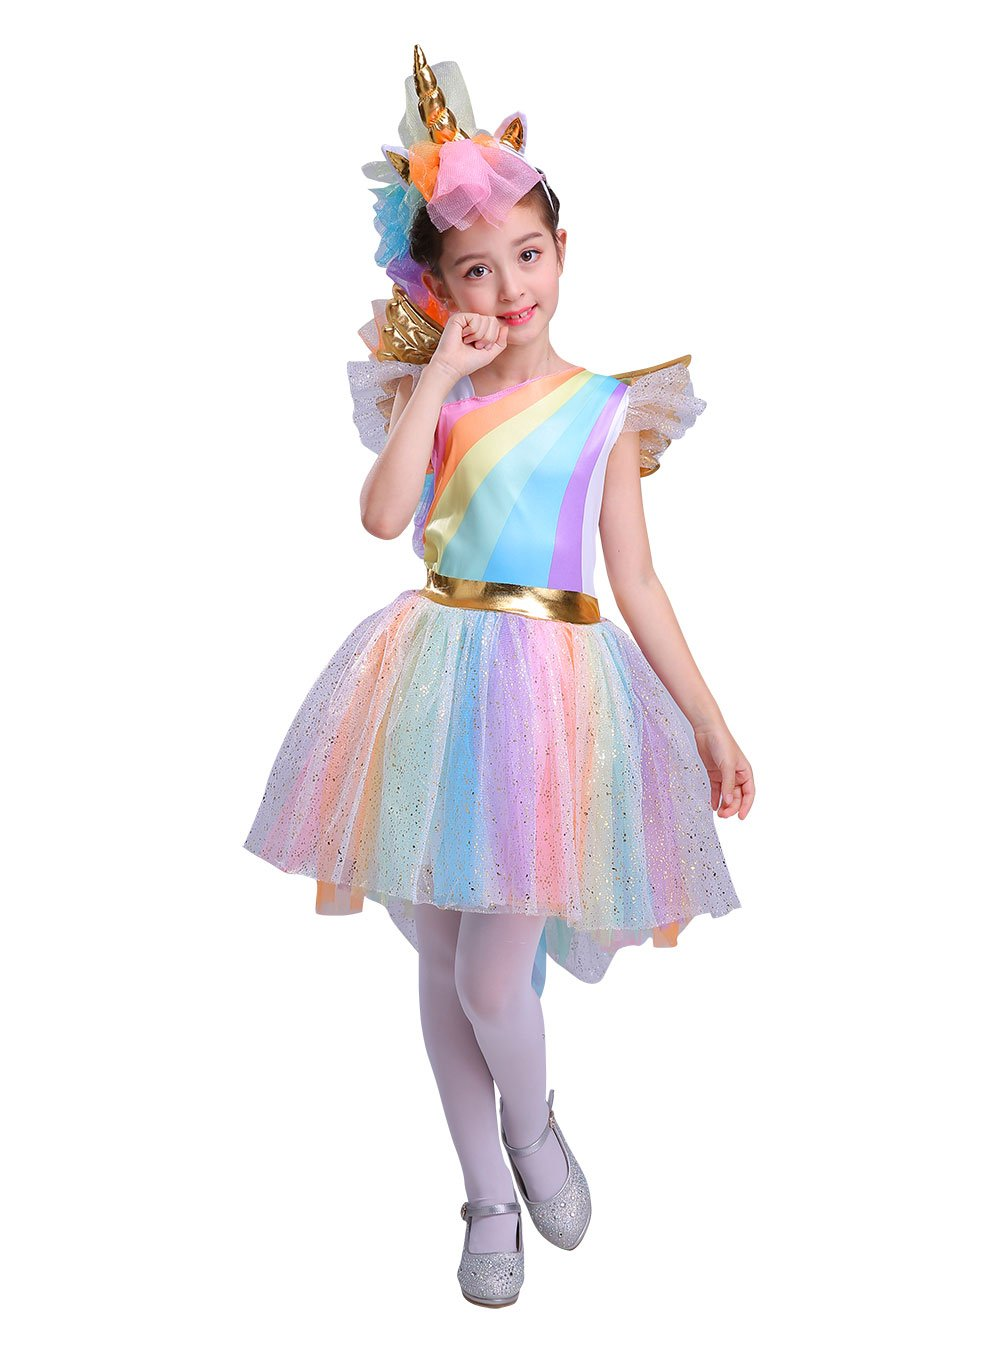 Seasons Direct Halloween Girl's Rainbow Unicorn Costume with Wing and Headband 6